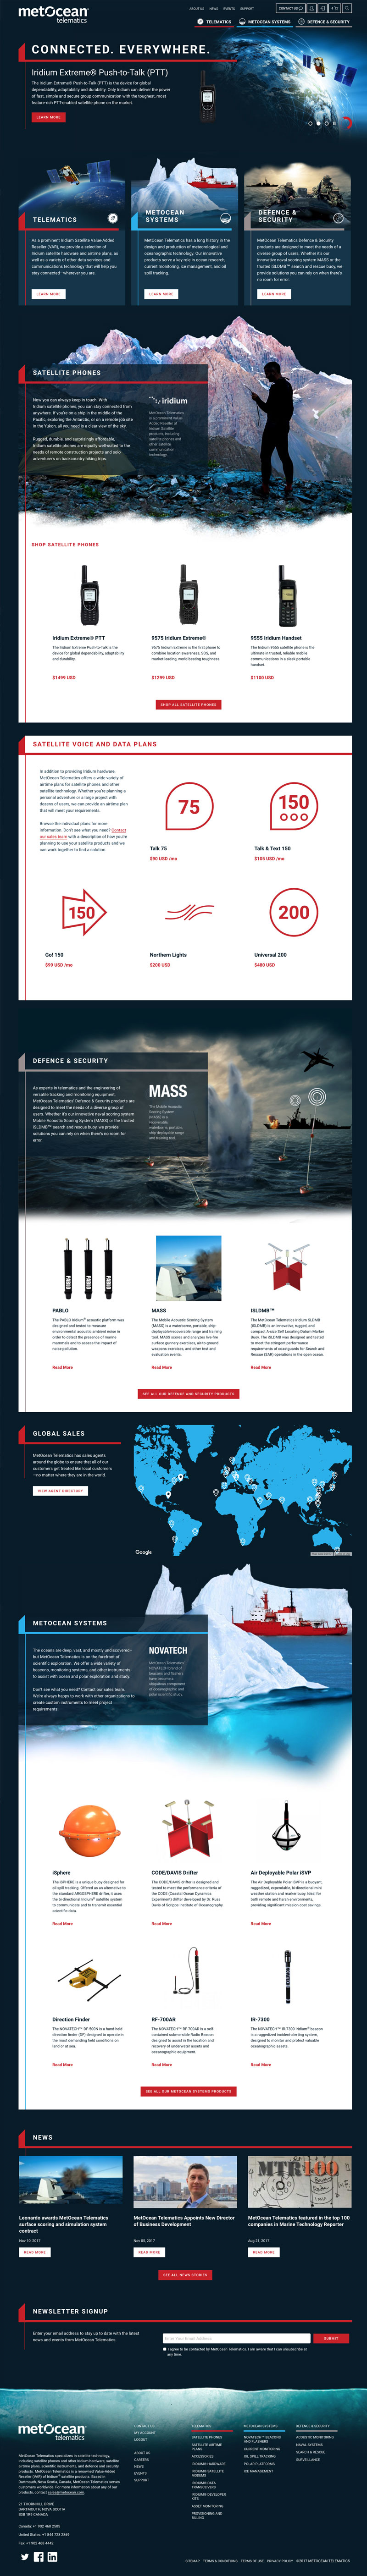 A screenshot of the full MetOcean homepage